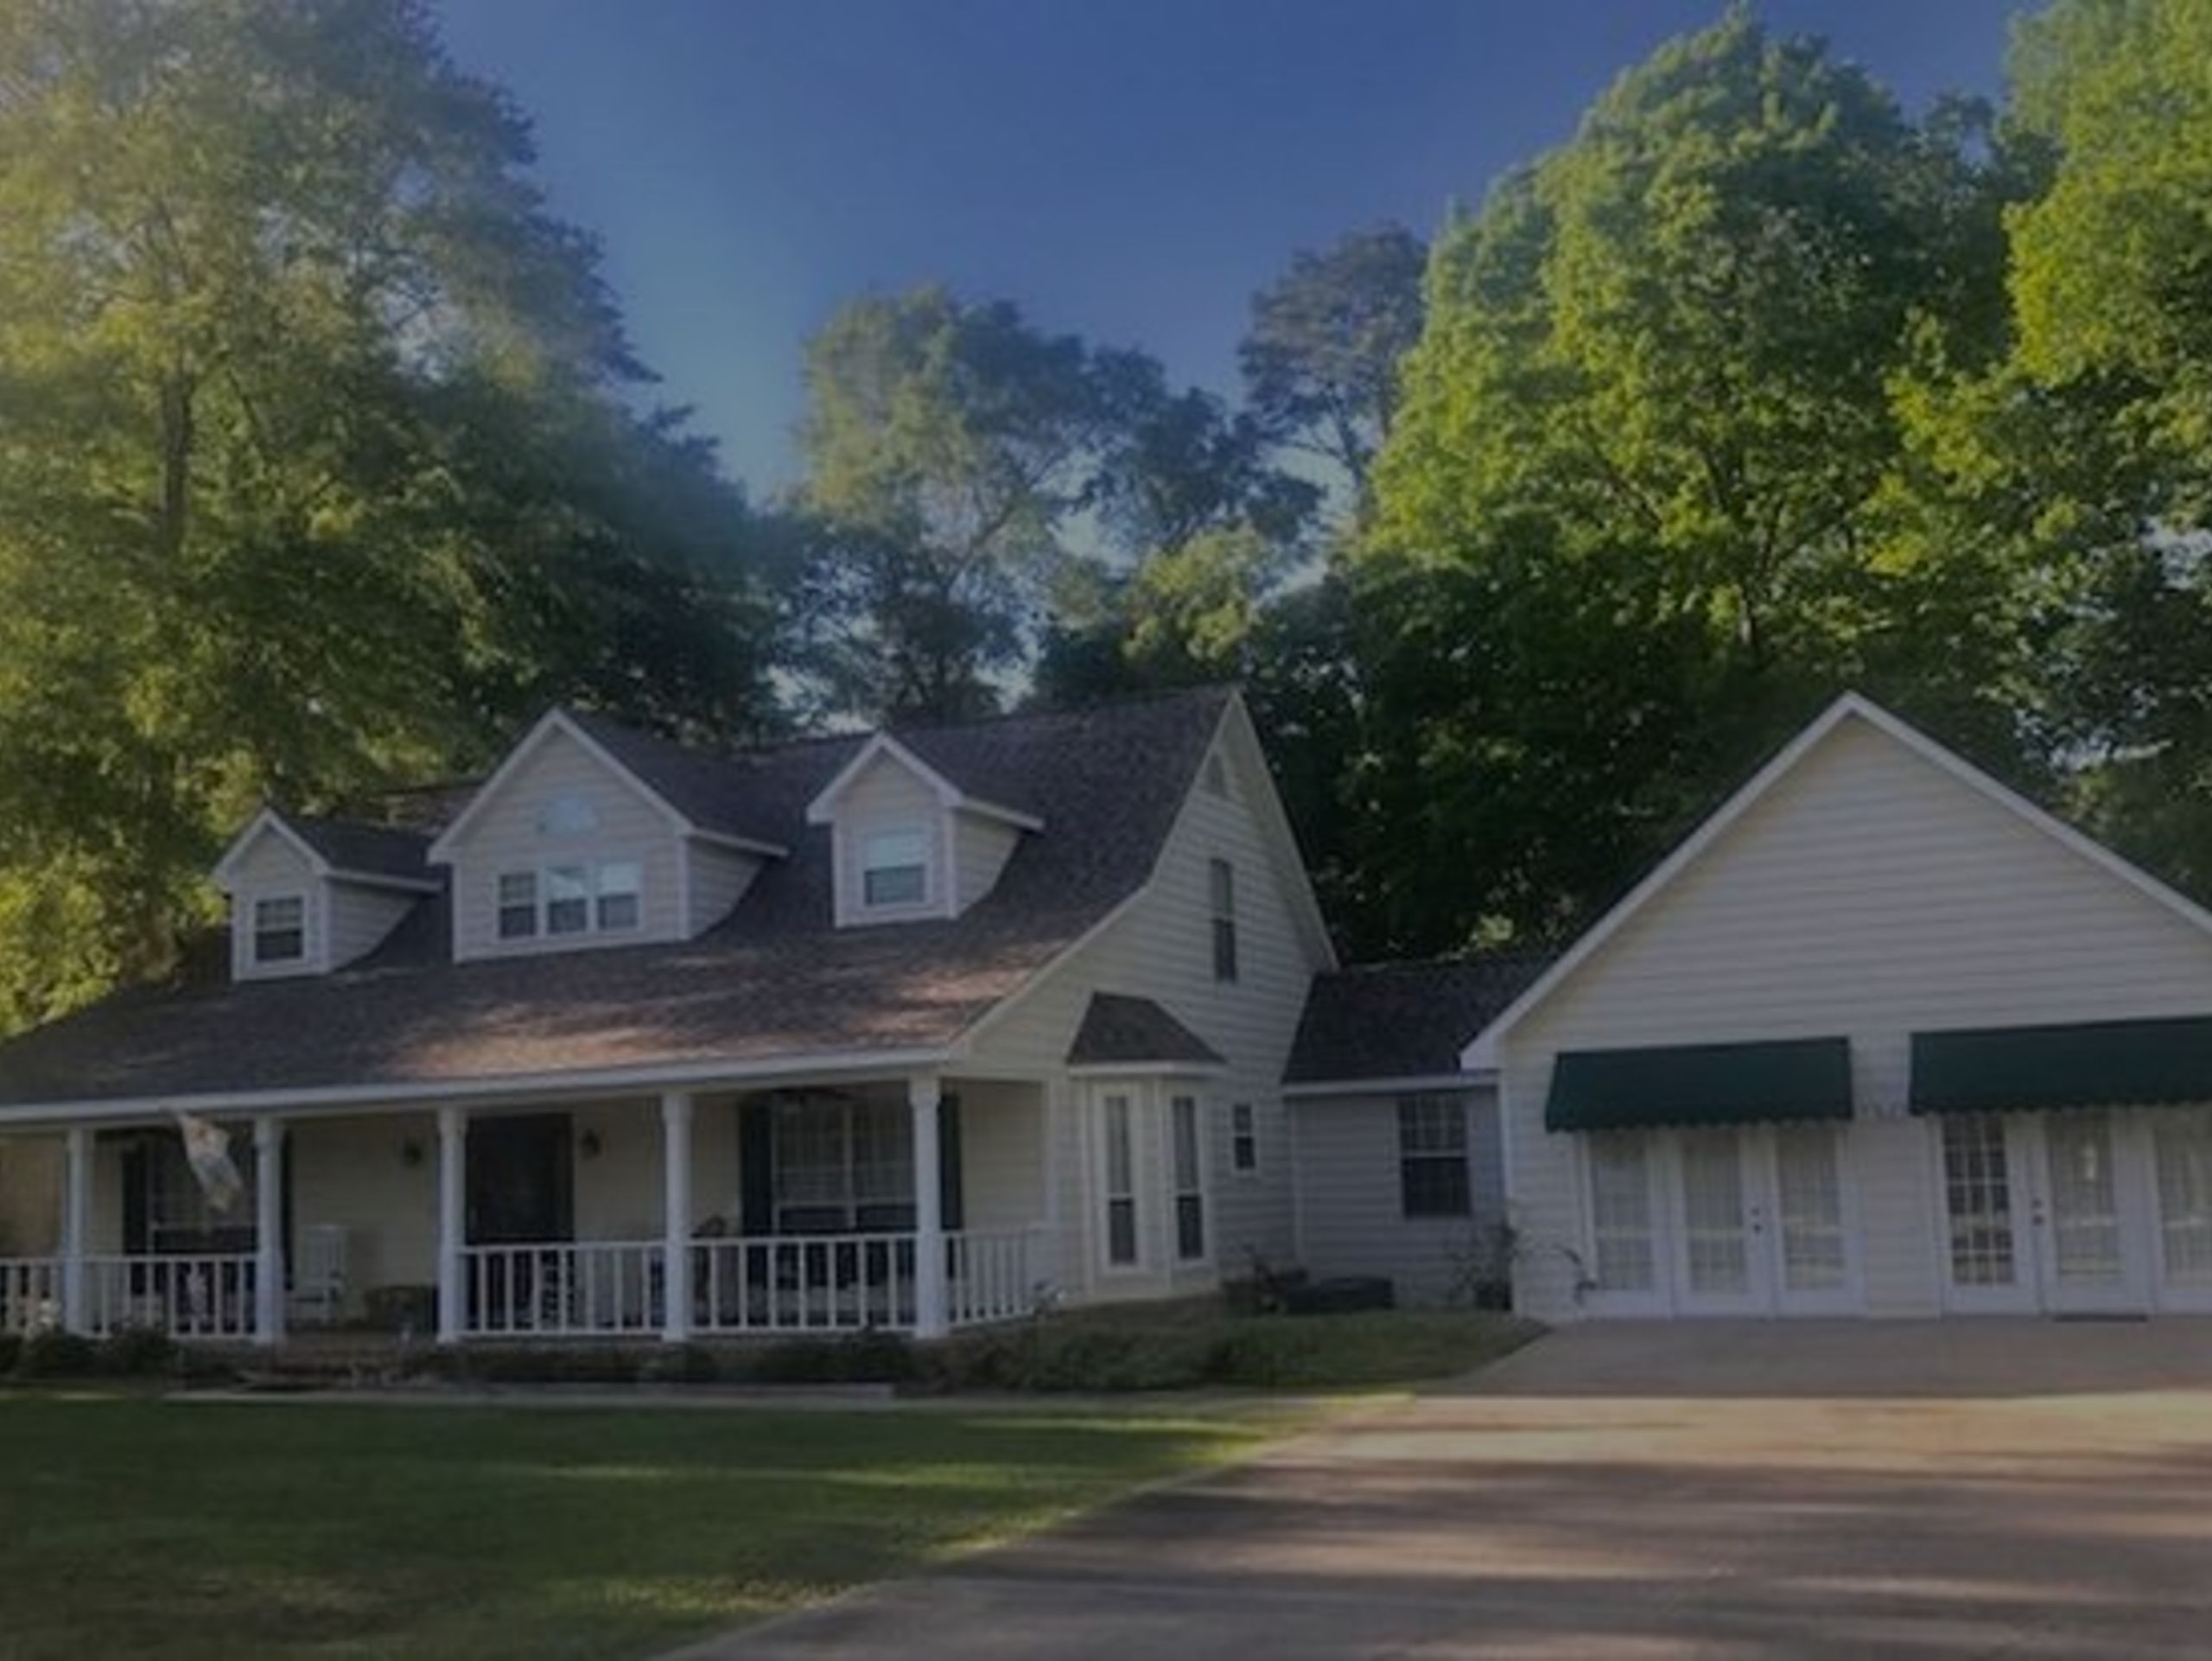 Monroeville For Sale By Owner – 4 Woodridge Drive